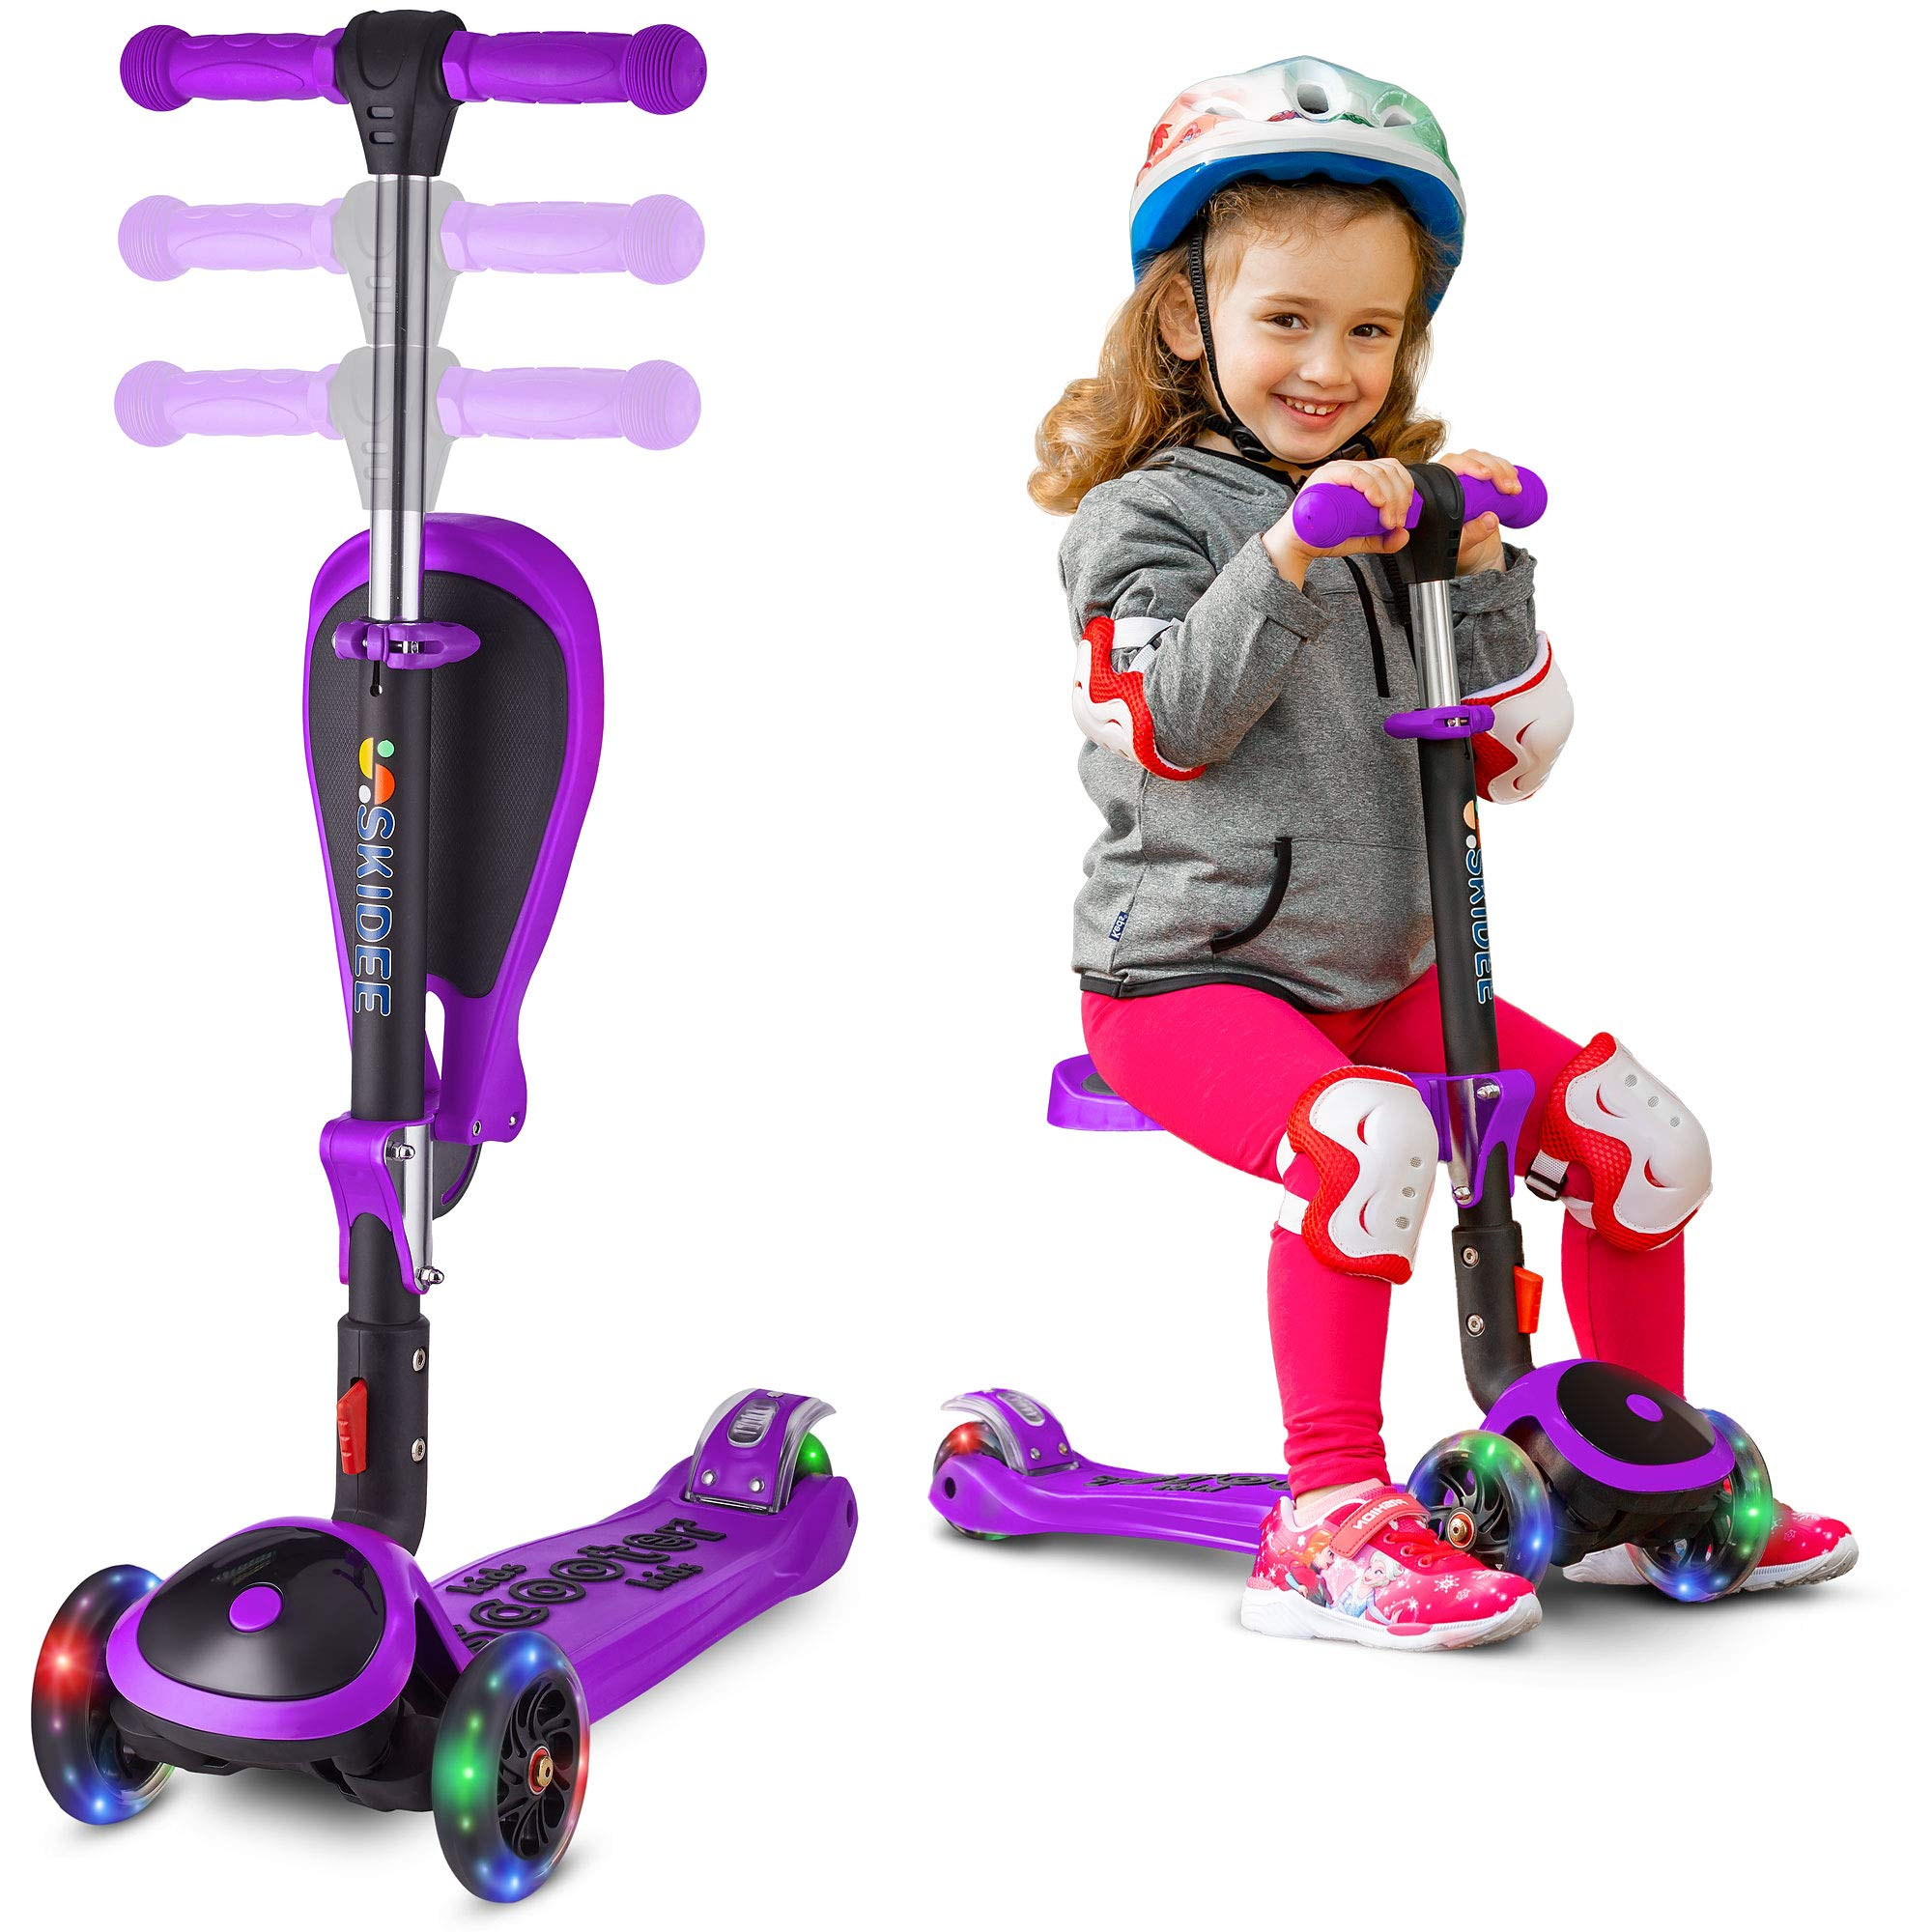 Scooter For Kids with Folding Seat - 2-in-1 Adjustable 3 Wheel Kick Scooter for Toddlers Girls & Boys - Fun Outdoor Toys for Kids Fitness, Outside Games, Kid Activities - Y200 (Purple, Scooter)